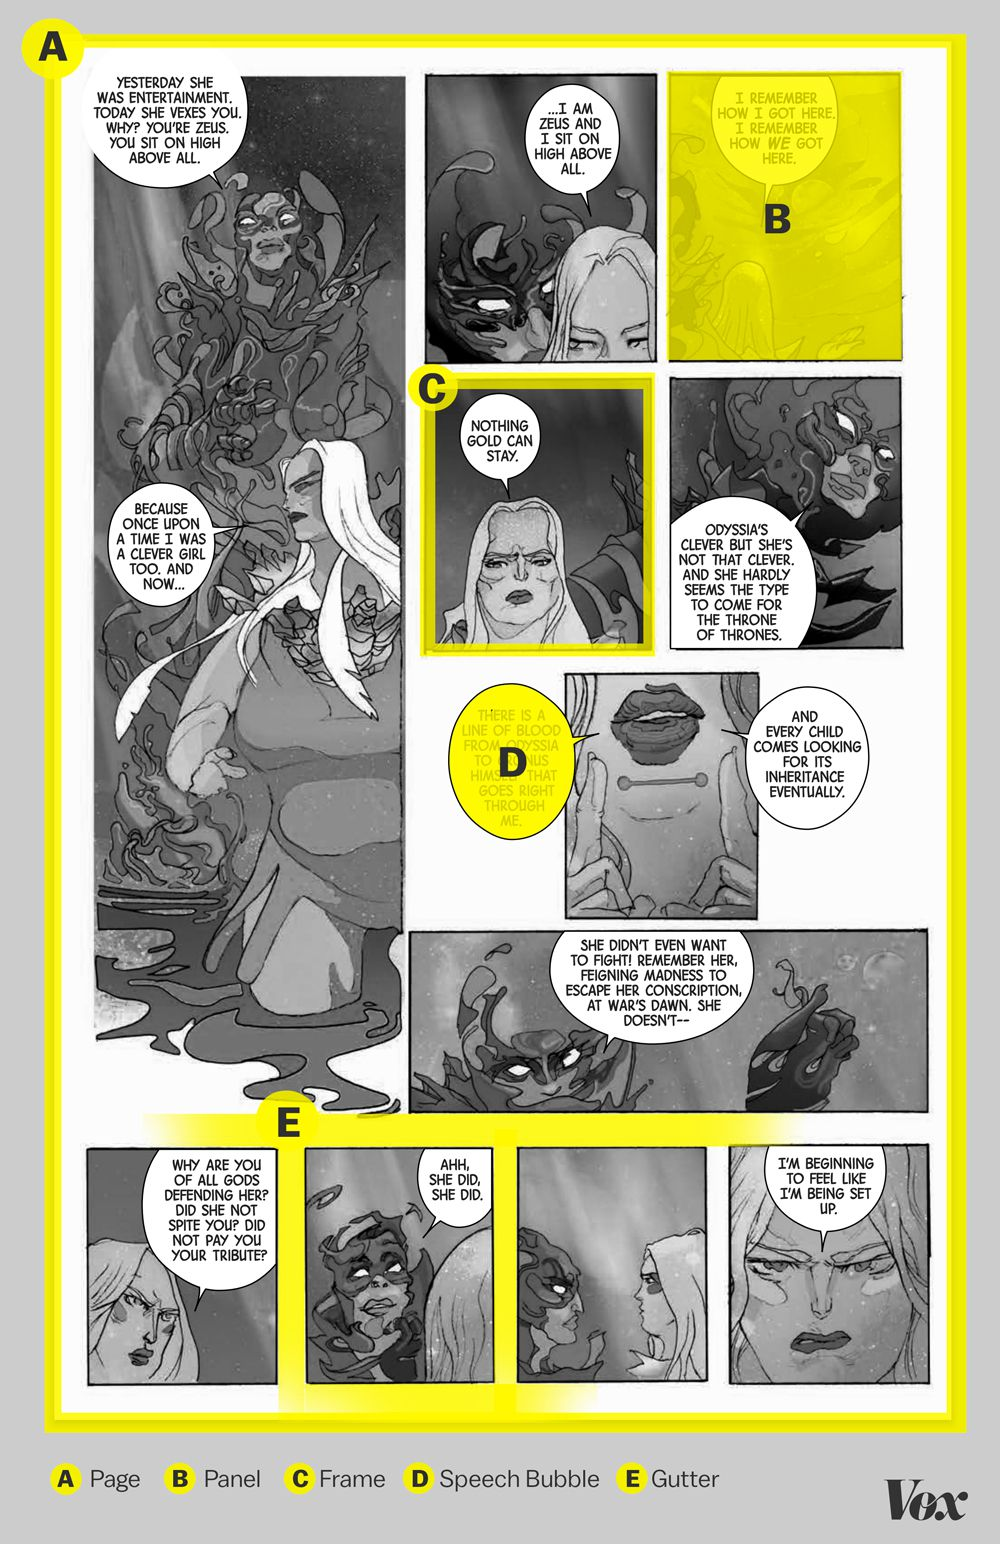 How to read a comic book: appreciating the story behind the